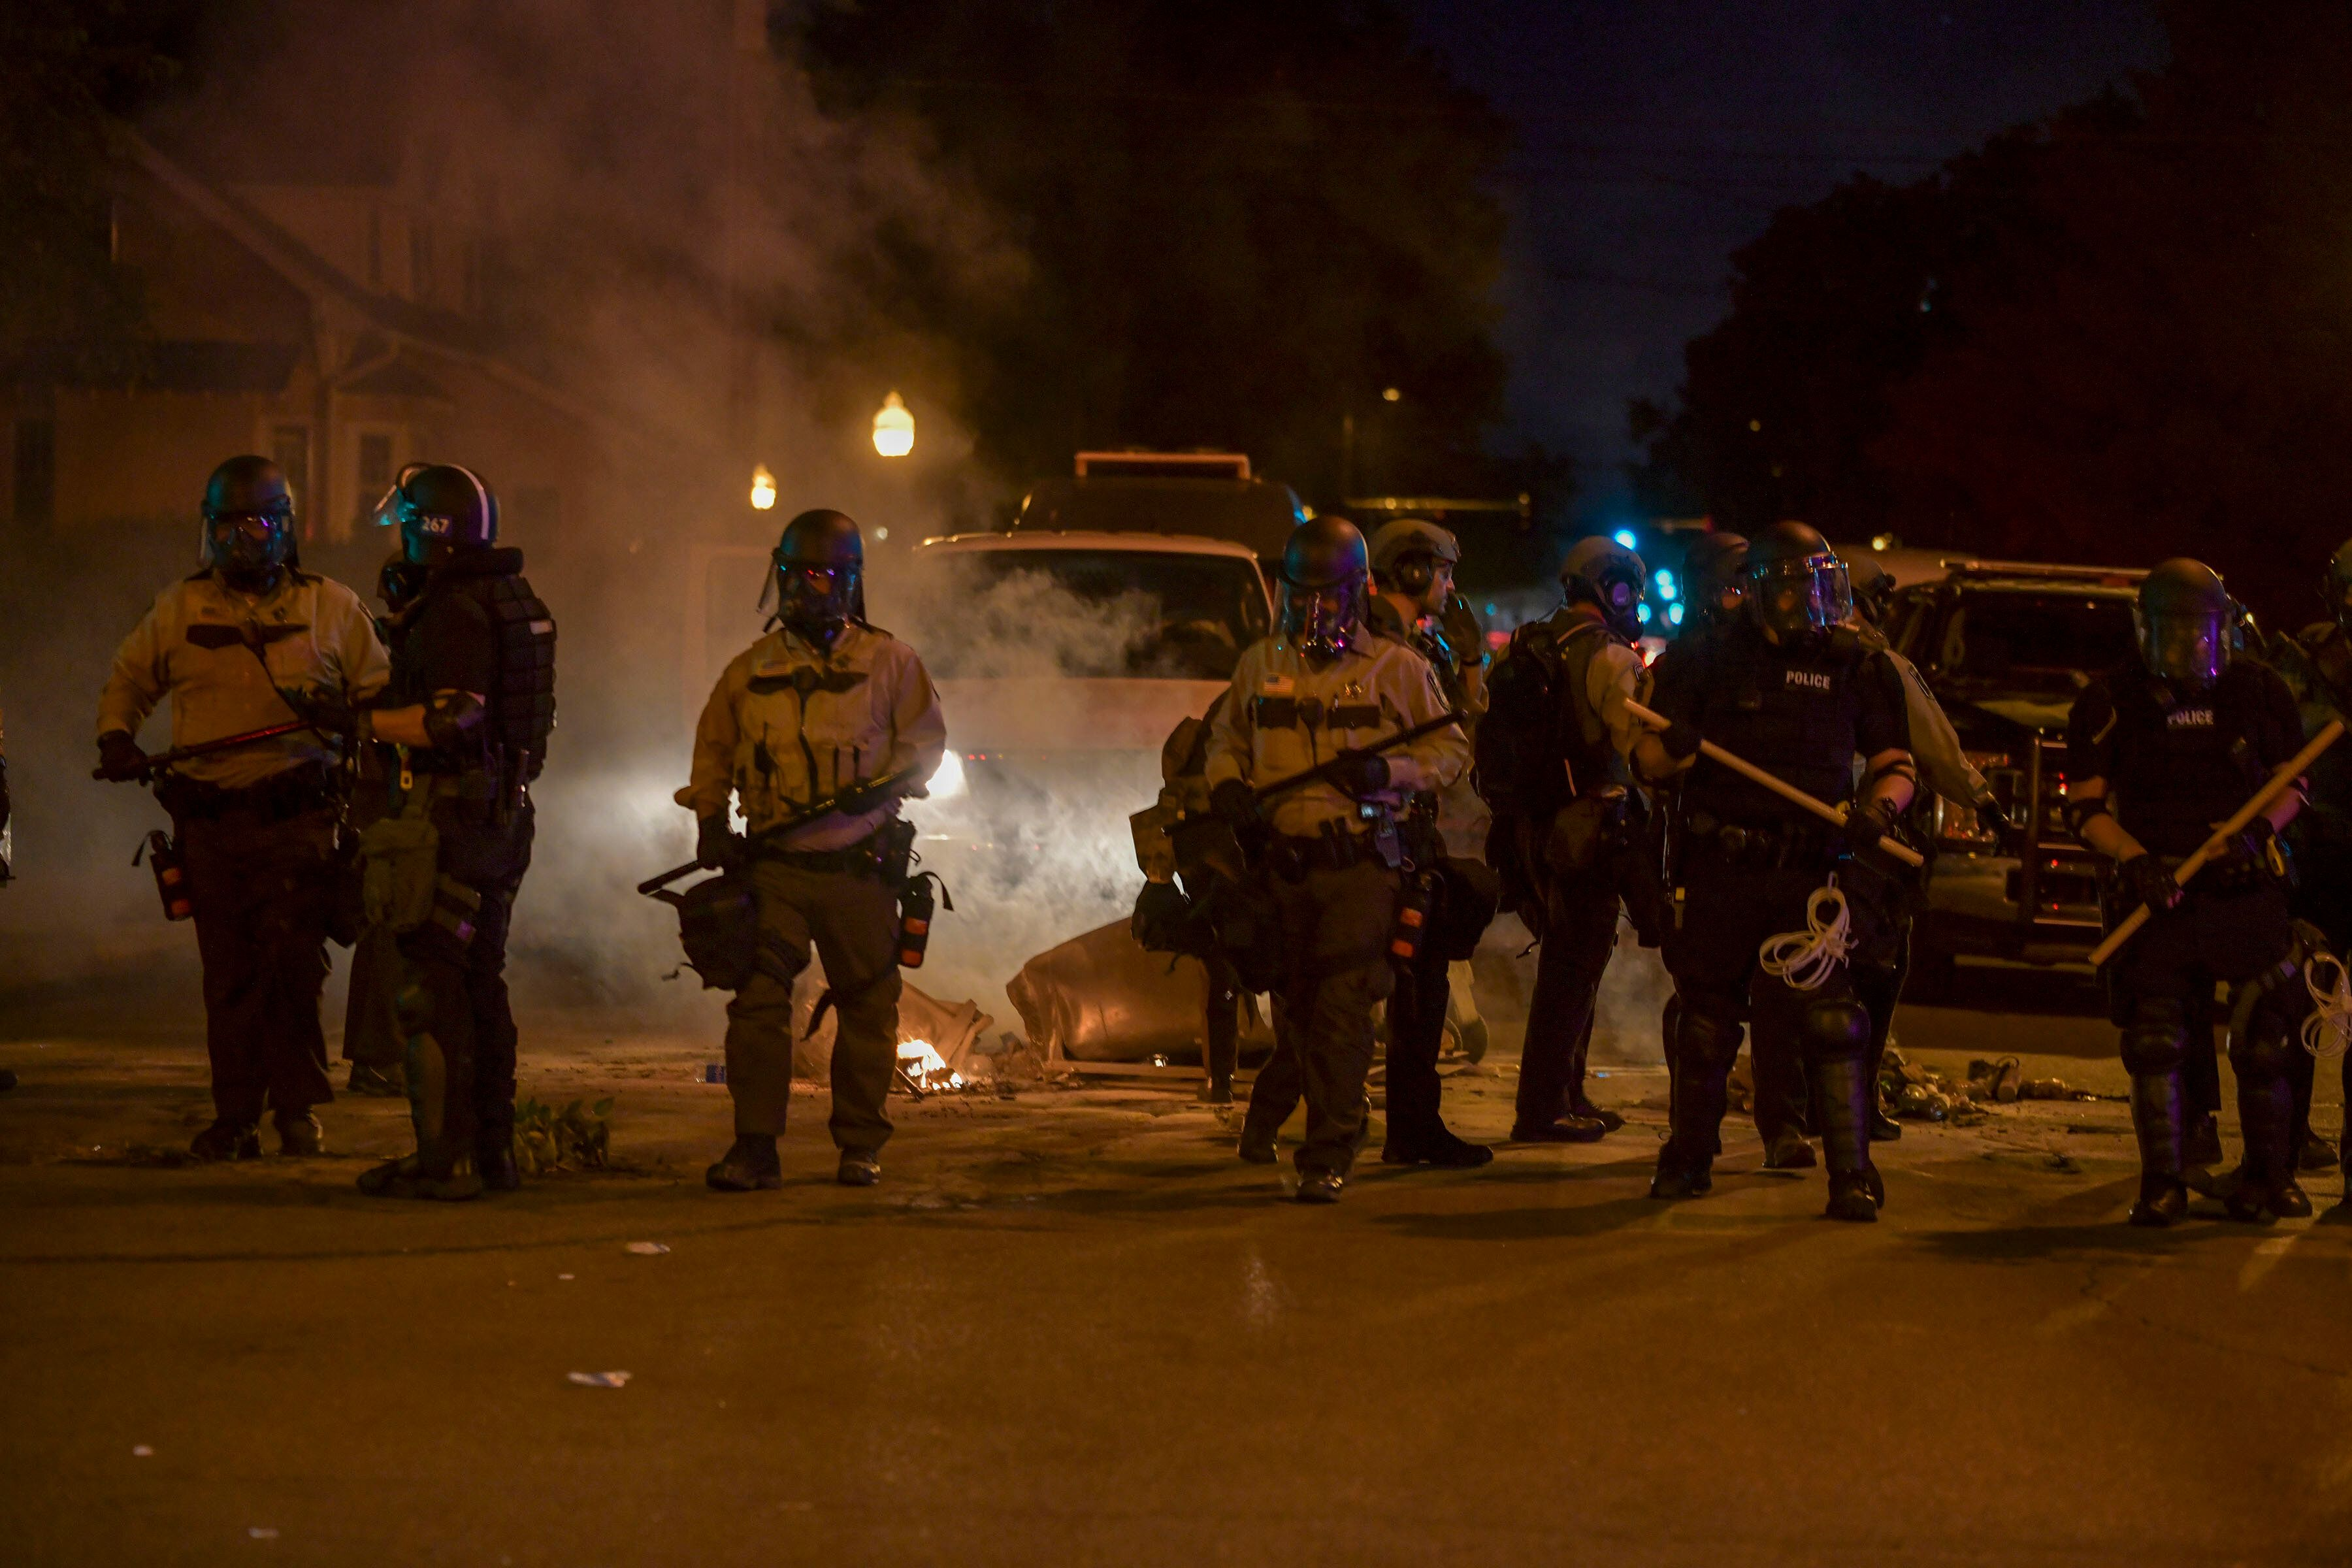 Police are seen armed with batons after protesters violated a curfew in effect in Minneapolis on Saturday.